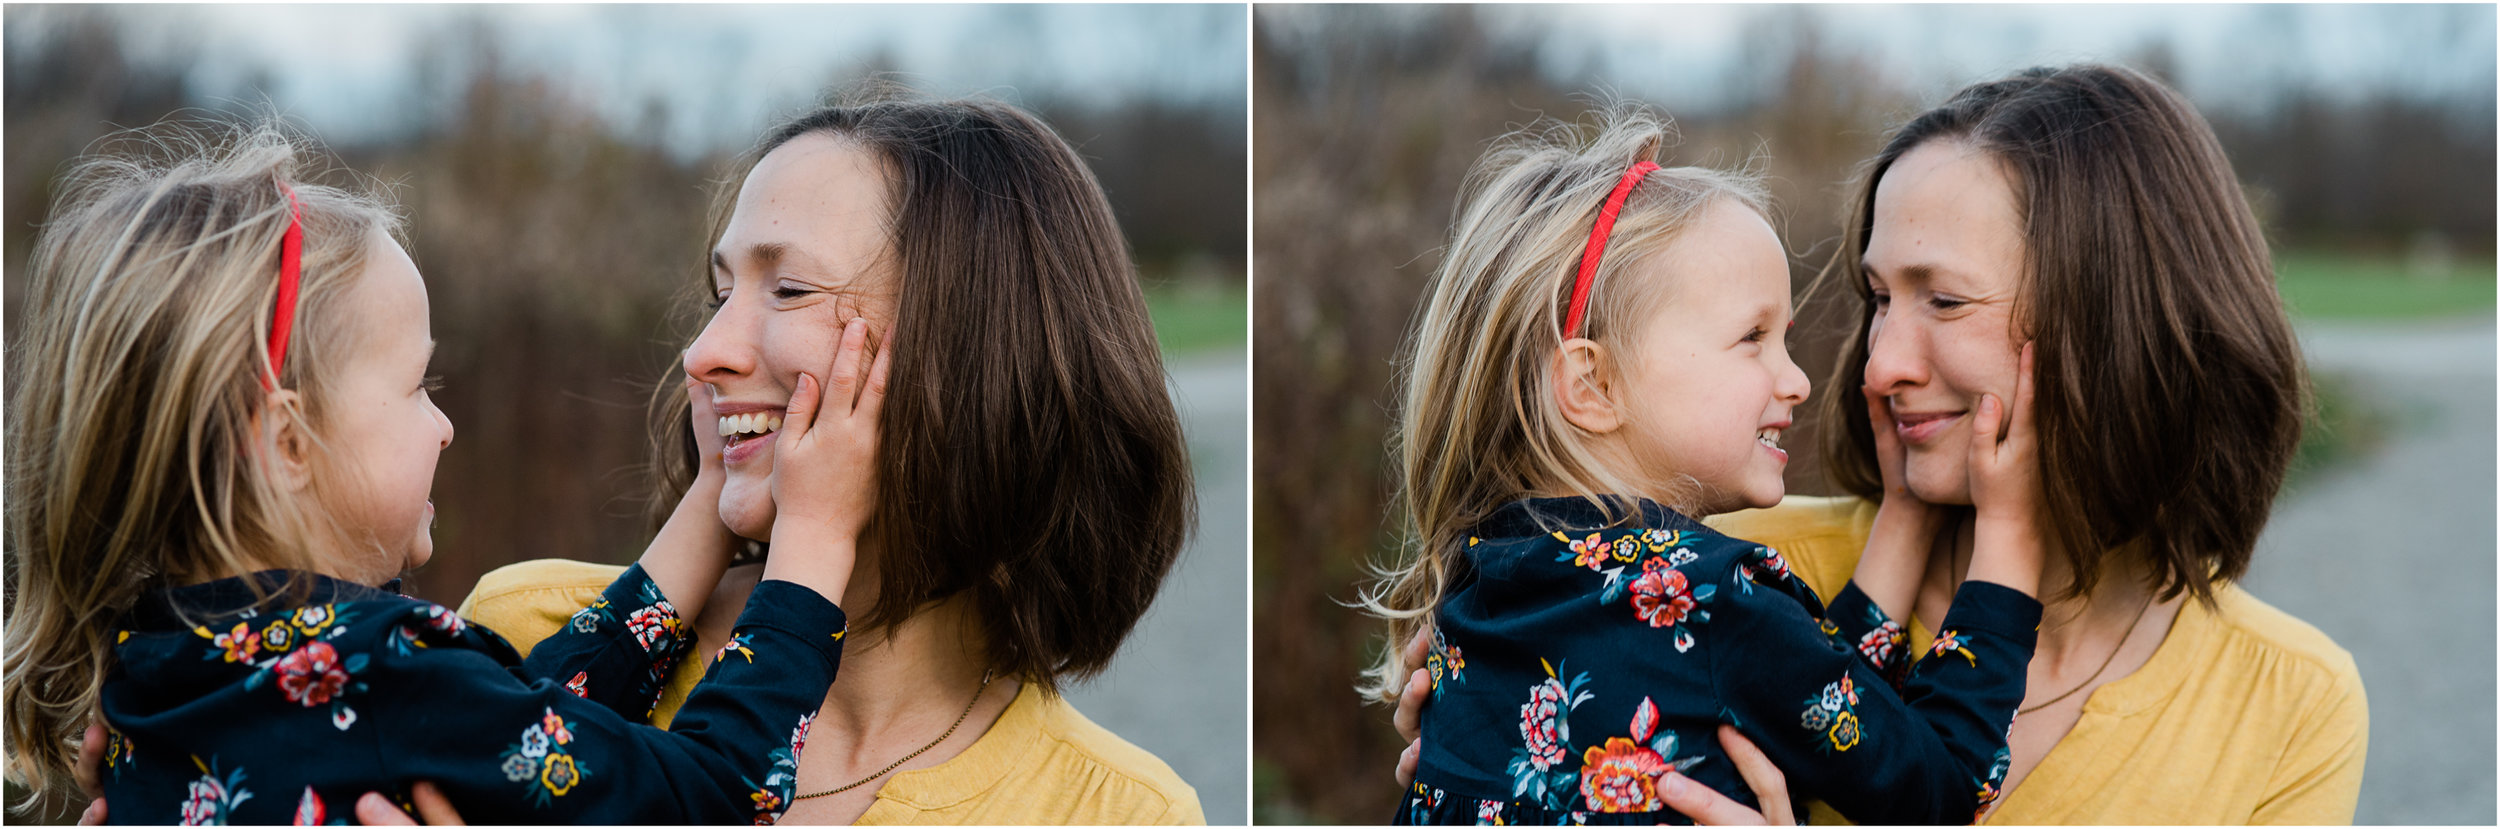 Moms and Daughters, Ligonier Family Photography.jpg